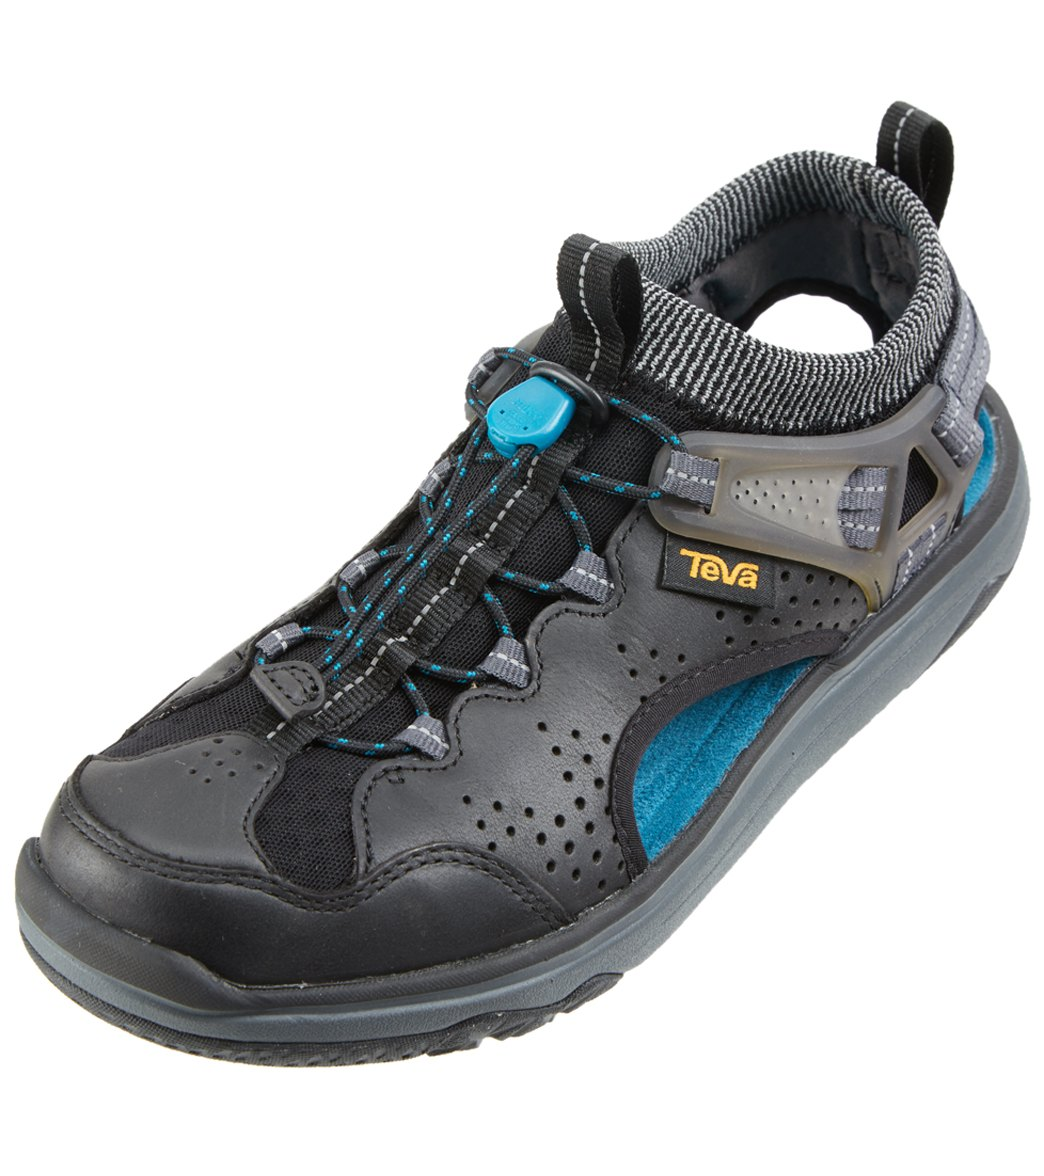 14b19f64c72 Teva Women's Terra Float Travel Lace Water Shoe at SwimOutlet.com - Free  Shipping